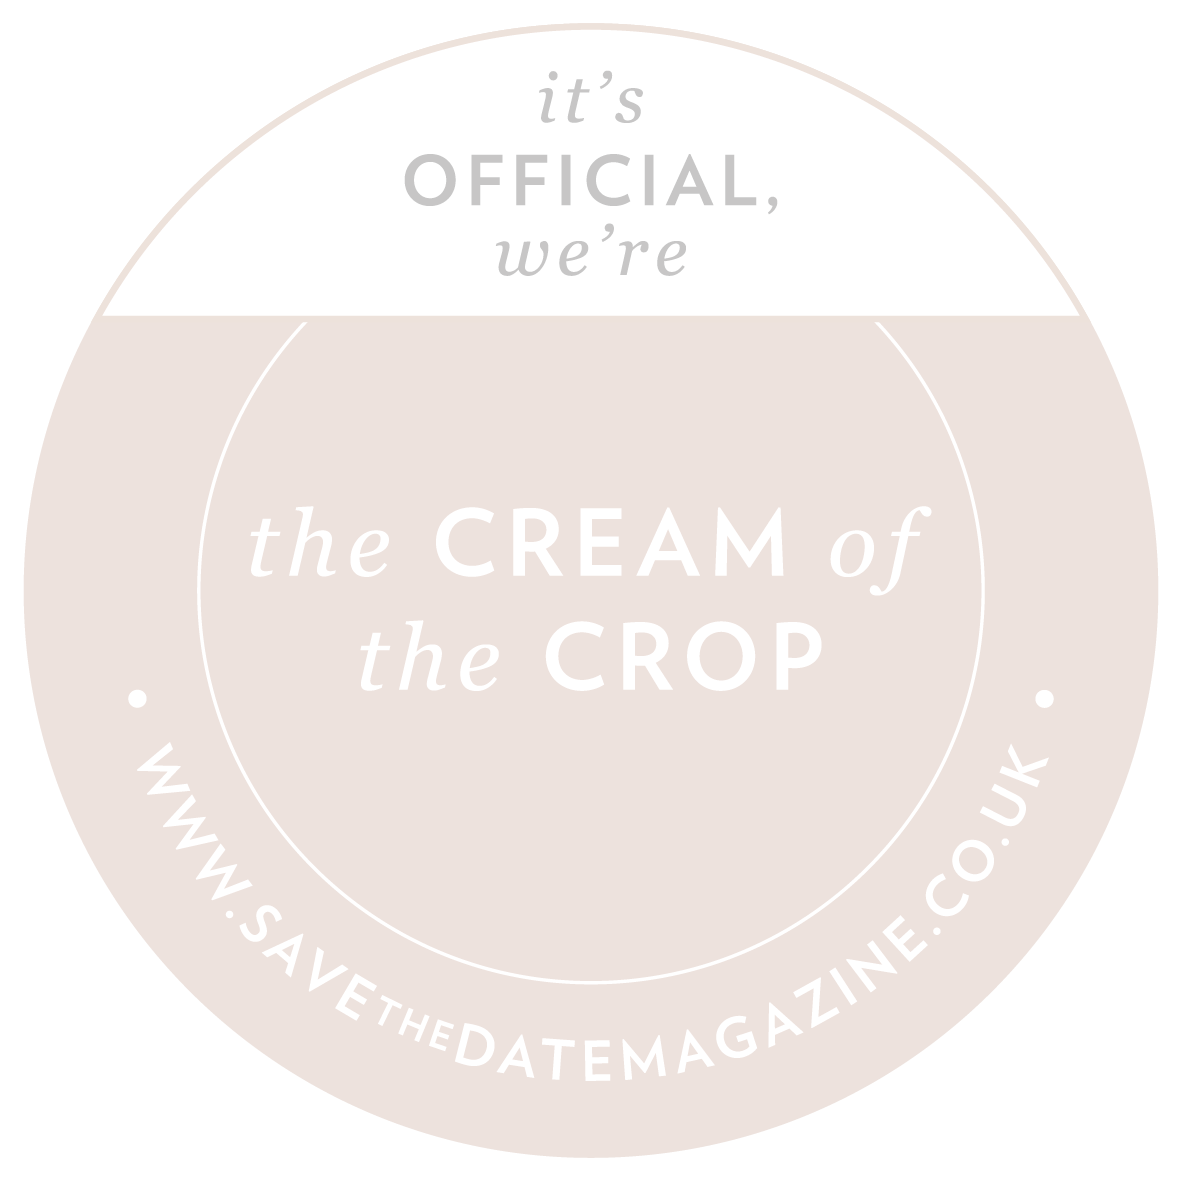 We'rethecreamofthecropsticker.png